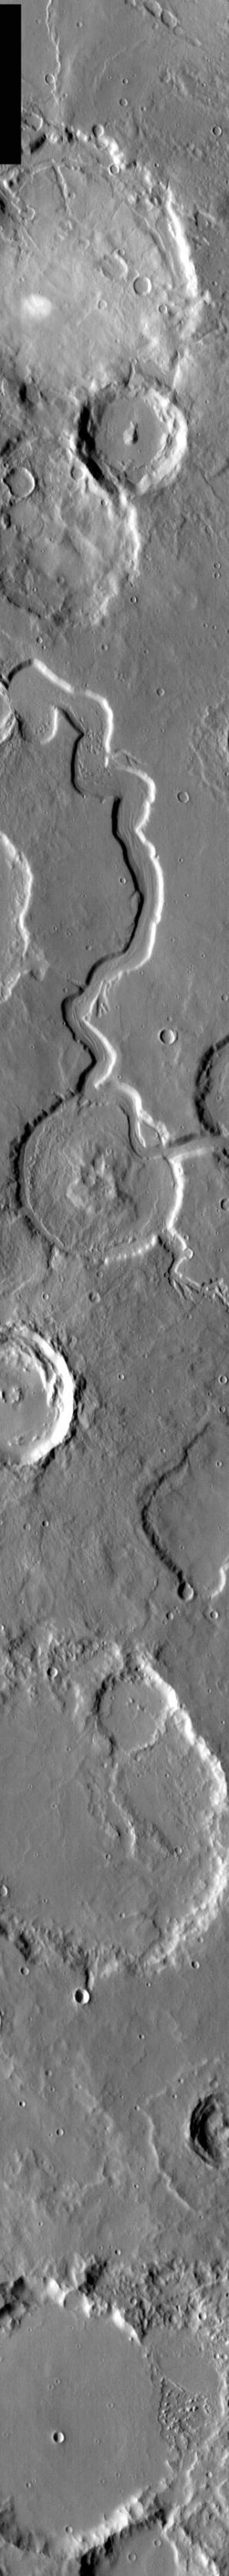 This image from NASA's 2001 Mars Odyssey released on March 18, 2004 shows a younger channel cutting through an older crater on Mars.